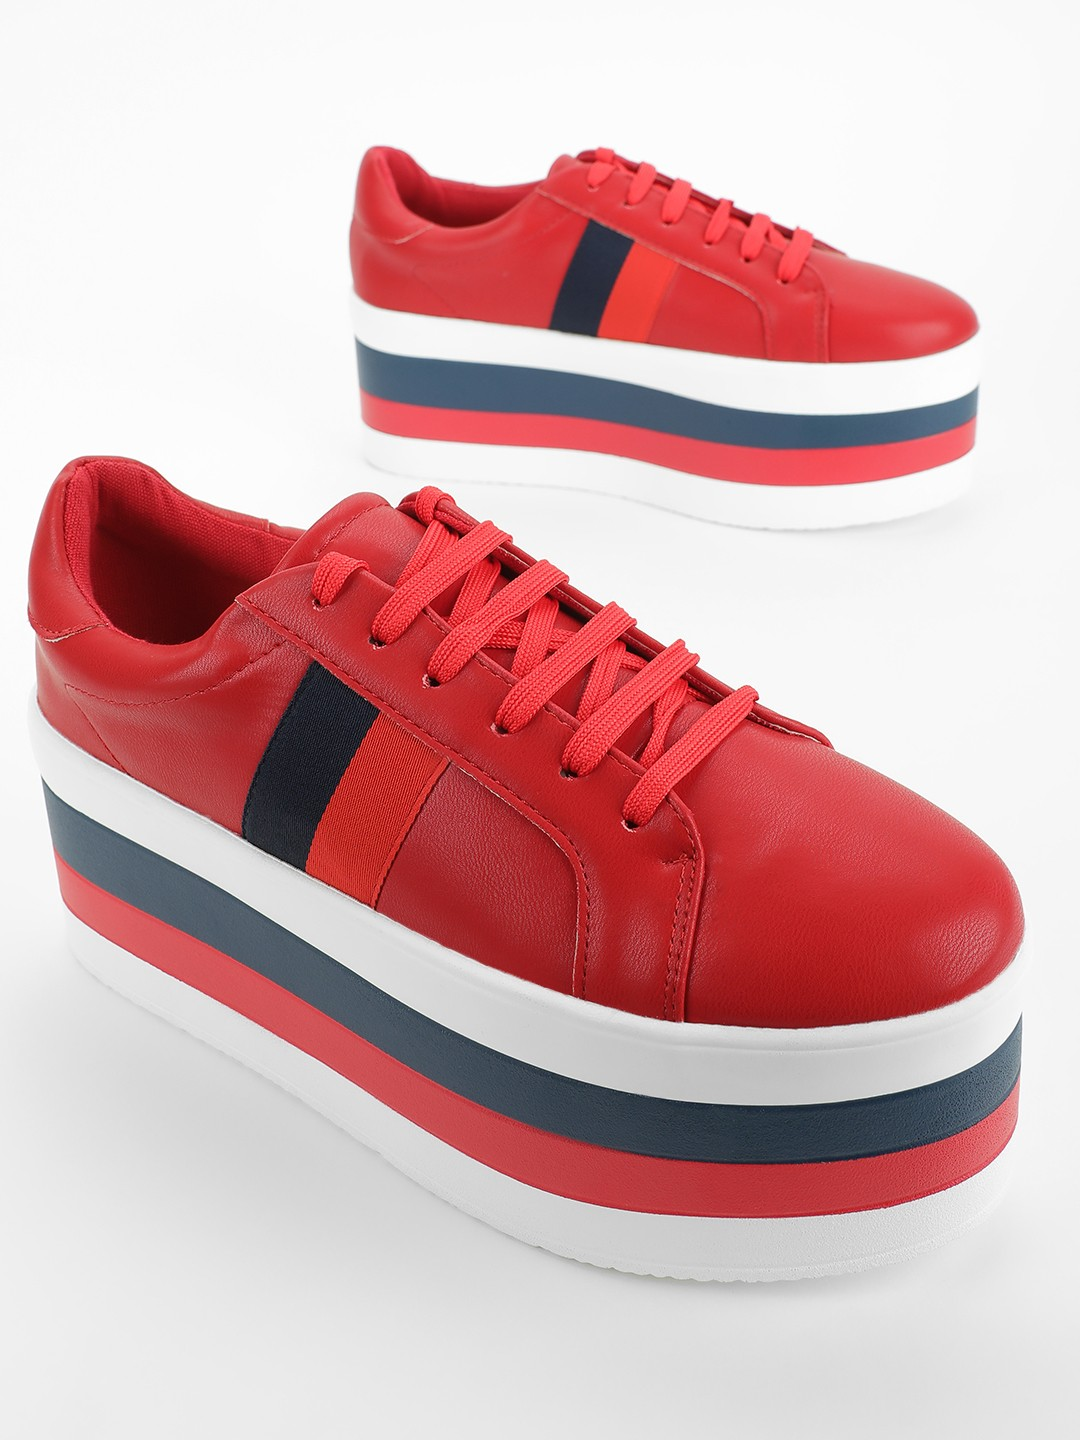 My Foot Couture Red Multi Coloured Sole Flatform Sneakers 1